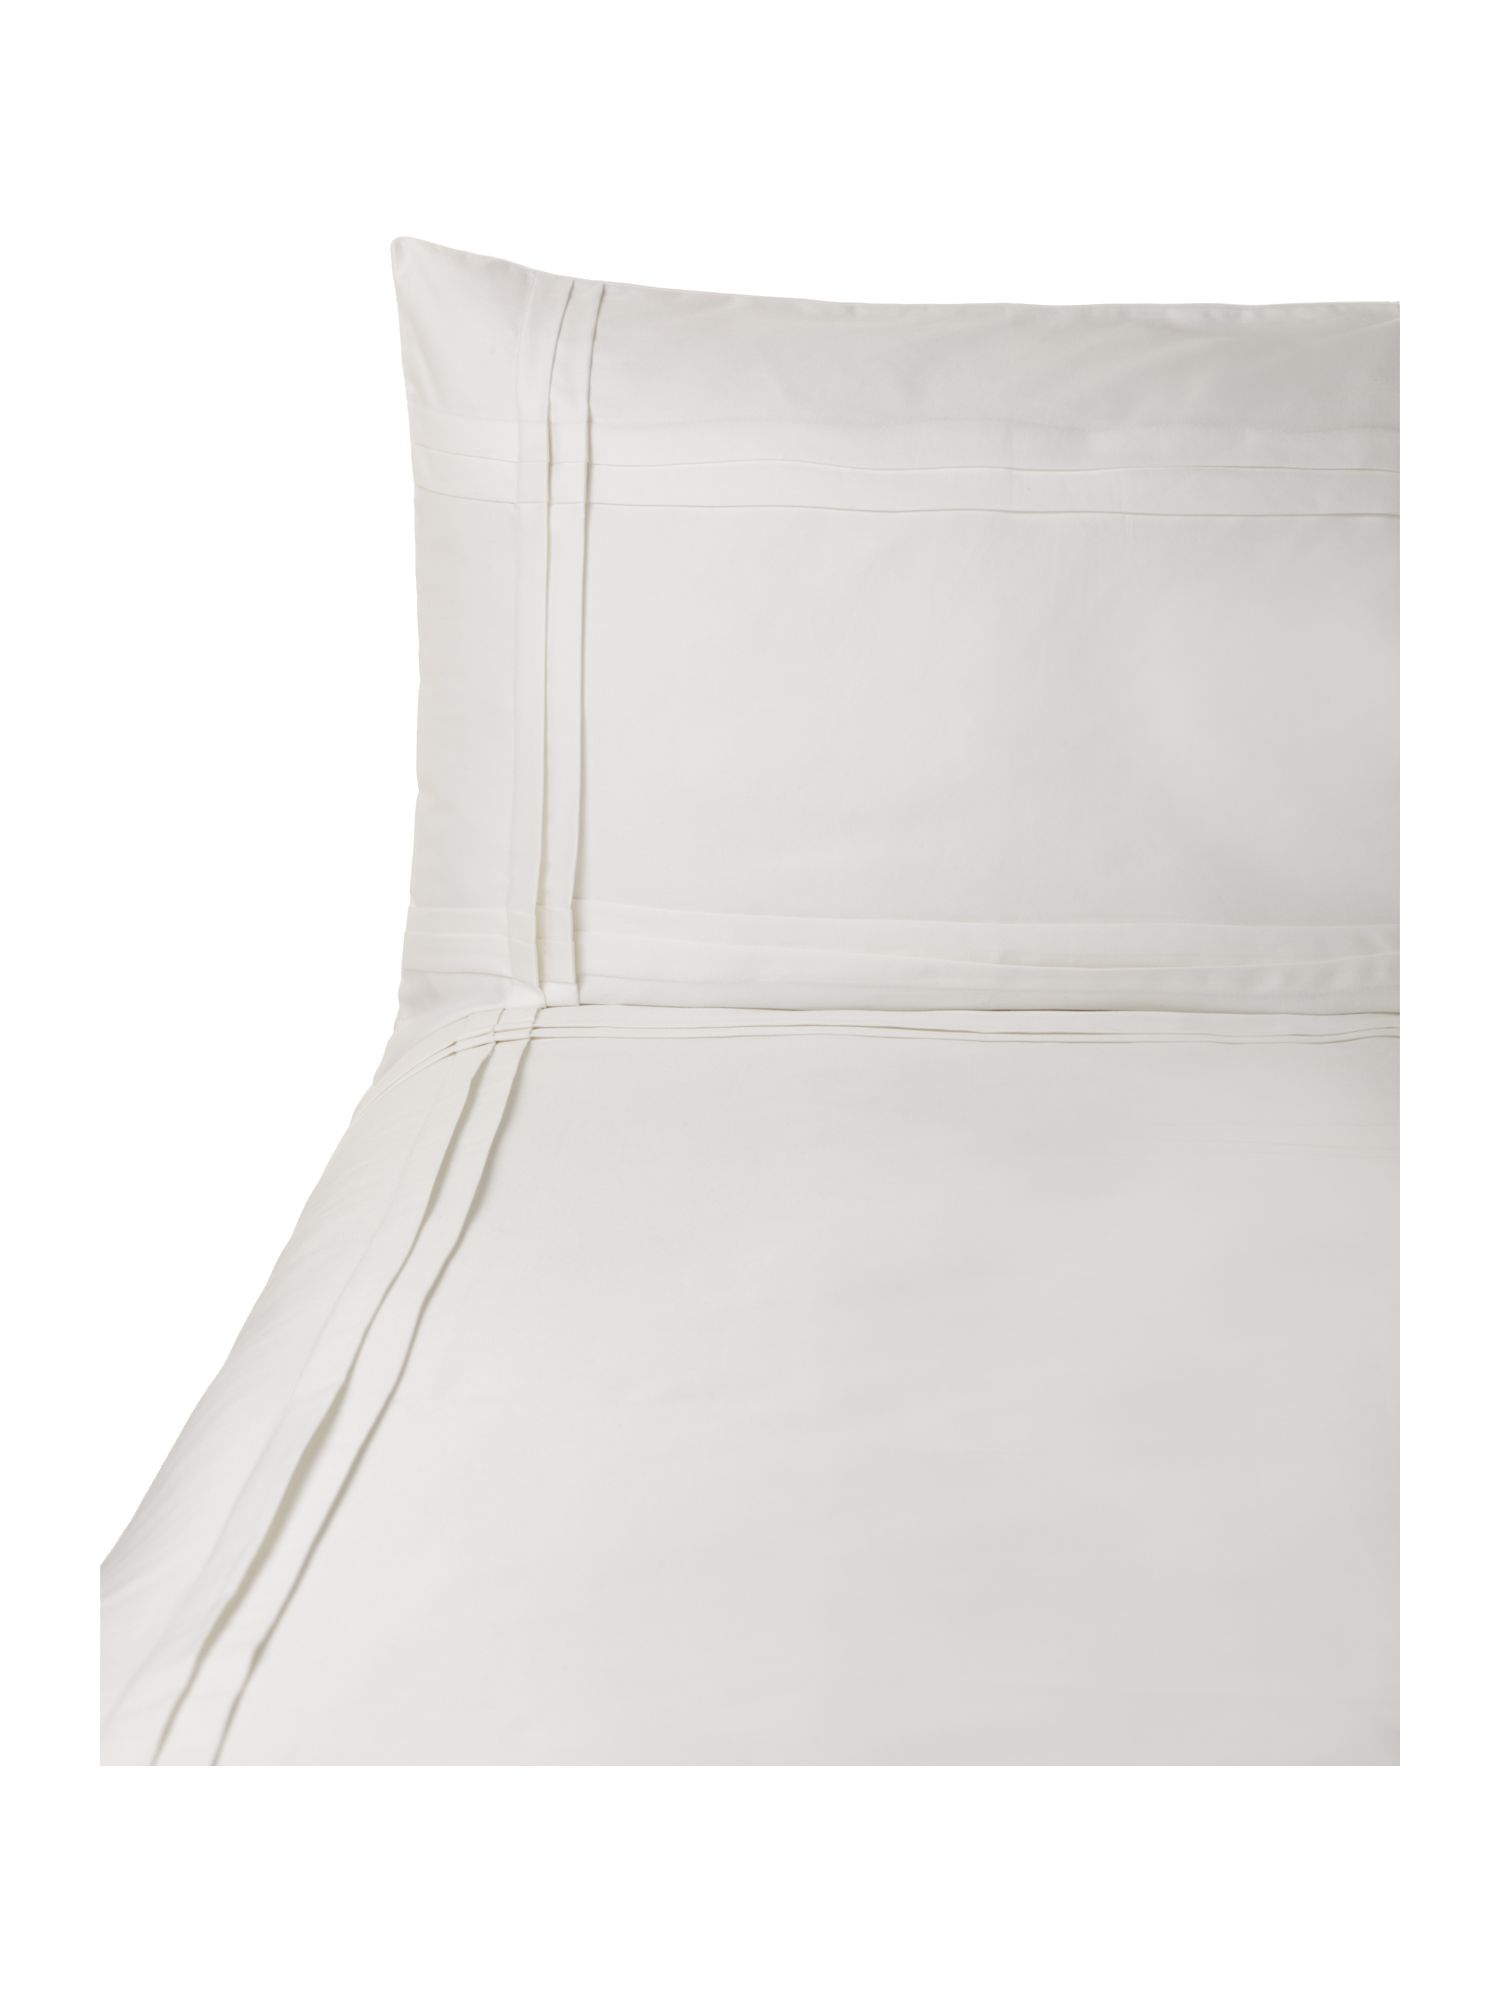 Criss Cross Pleat double duvet cover set white